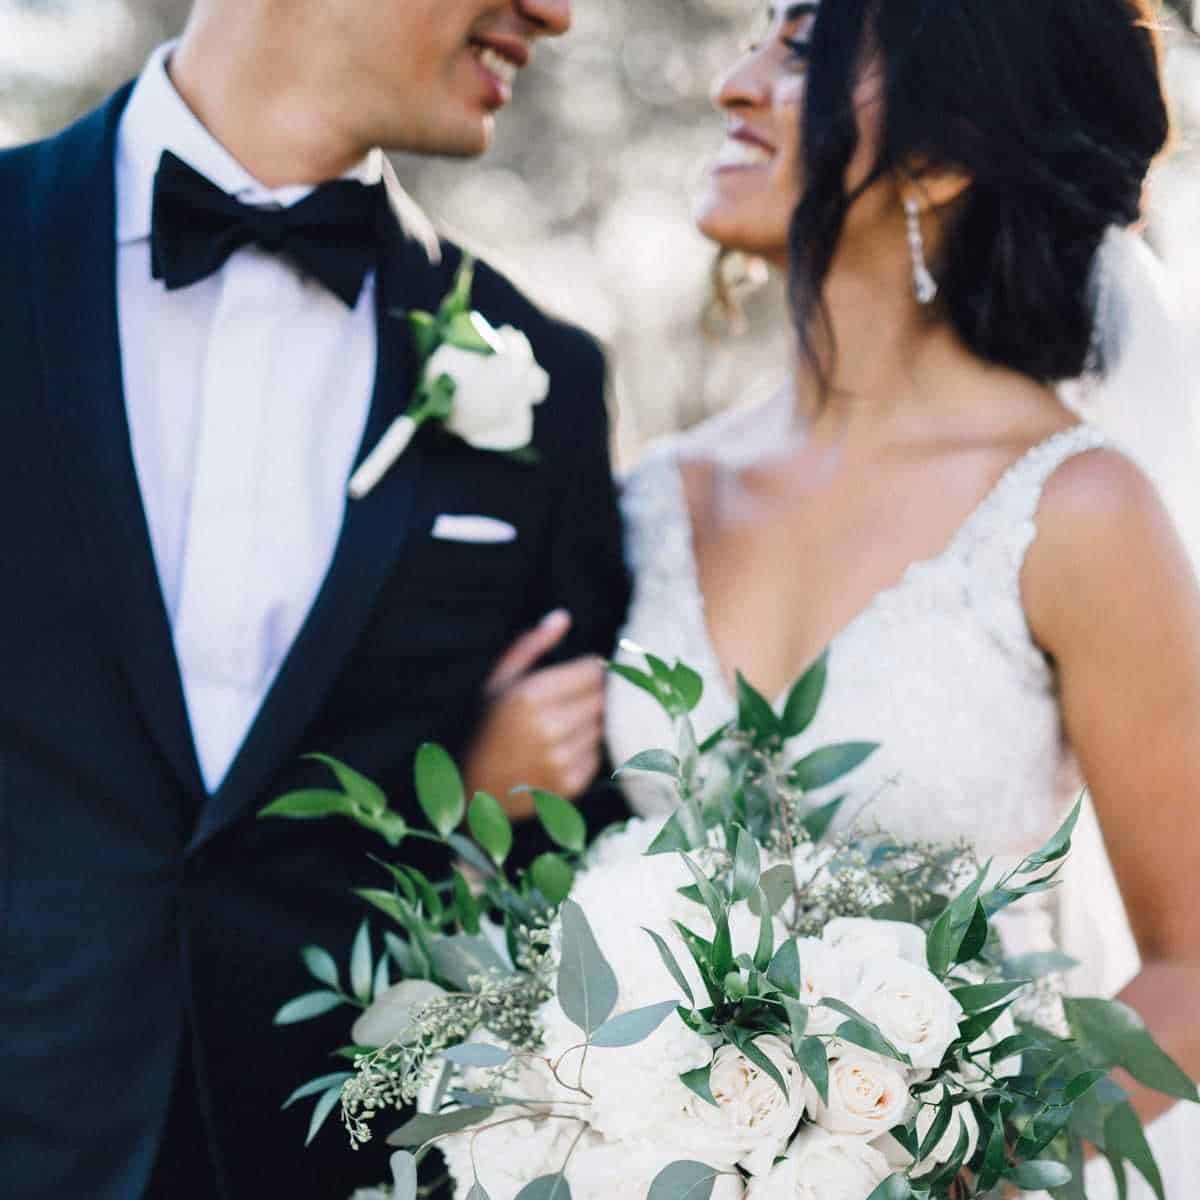 Toronto Wedding Planner - Full Planning